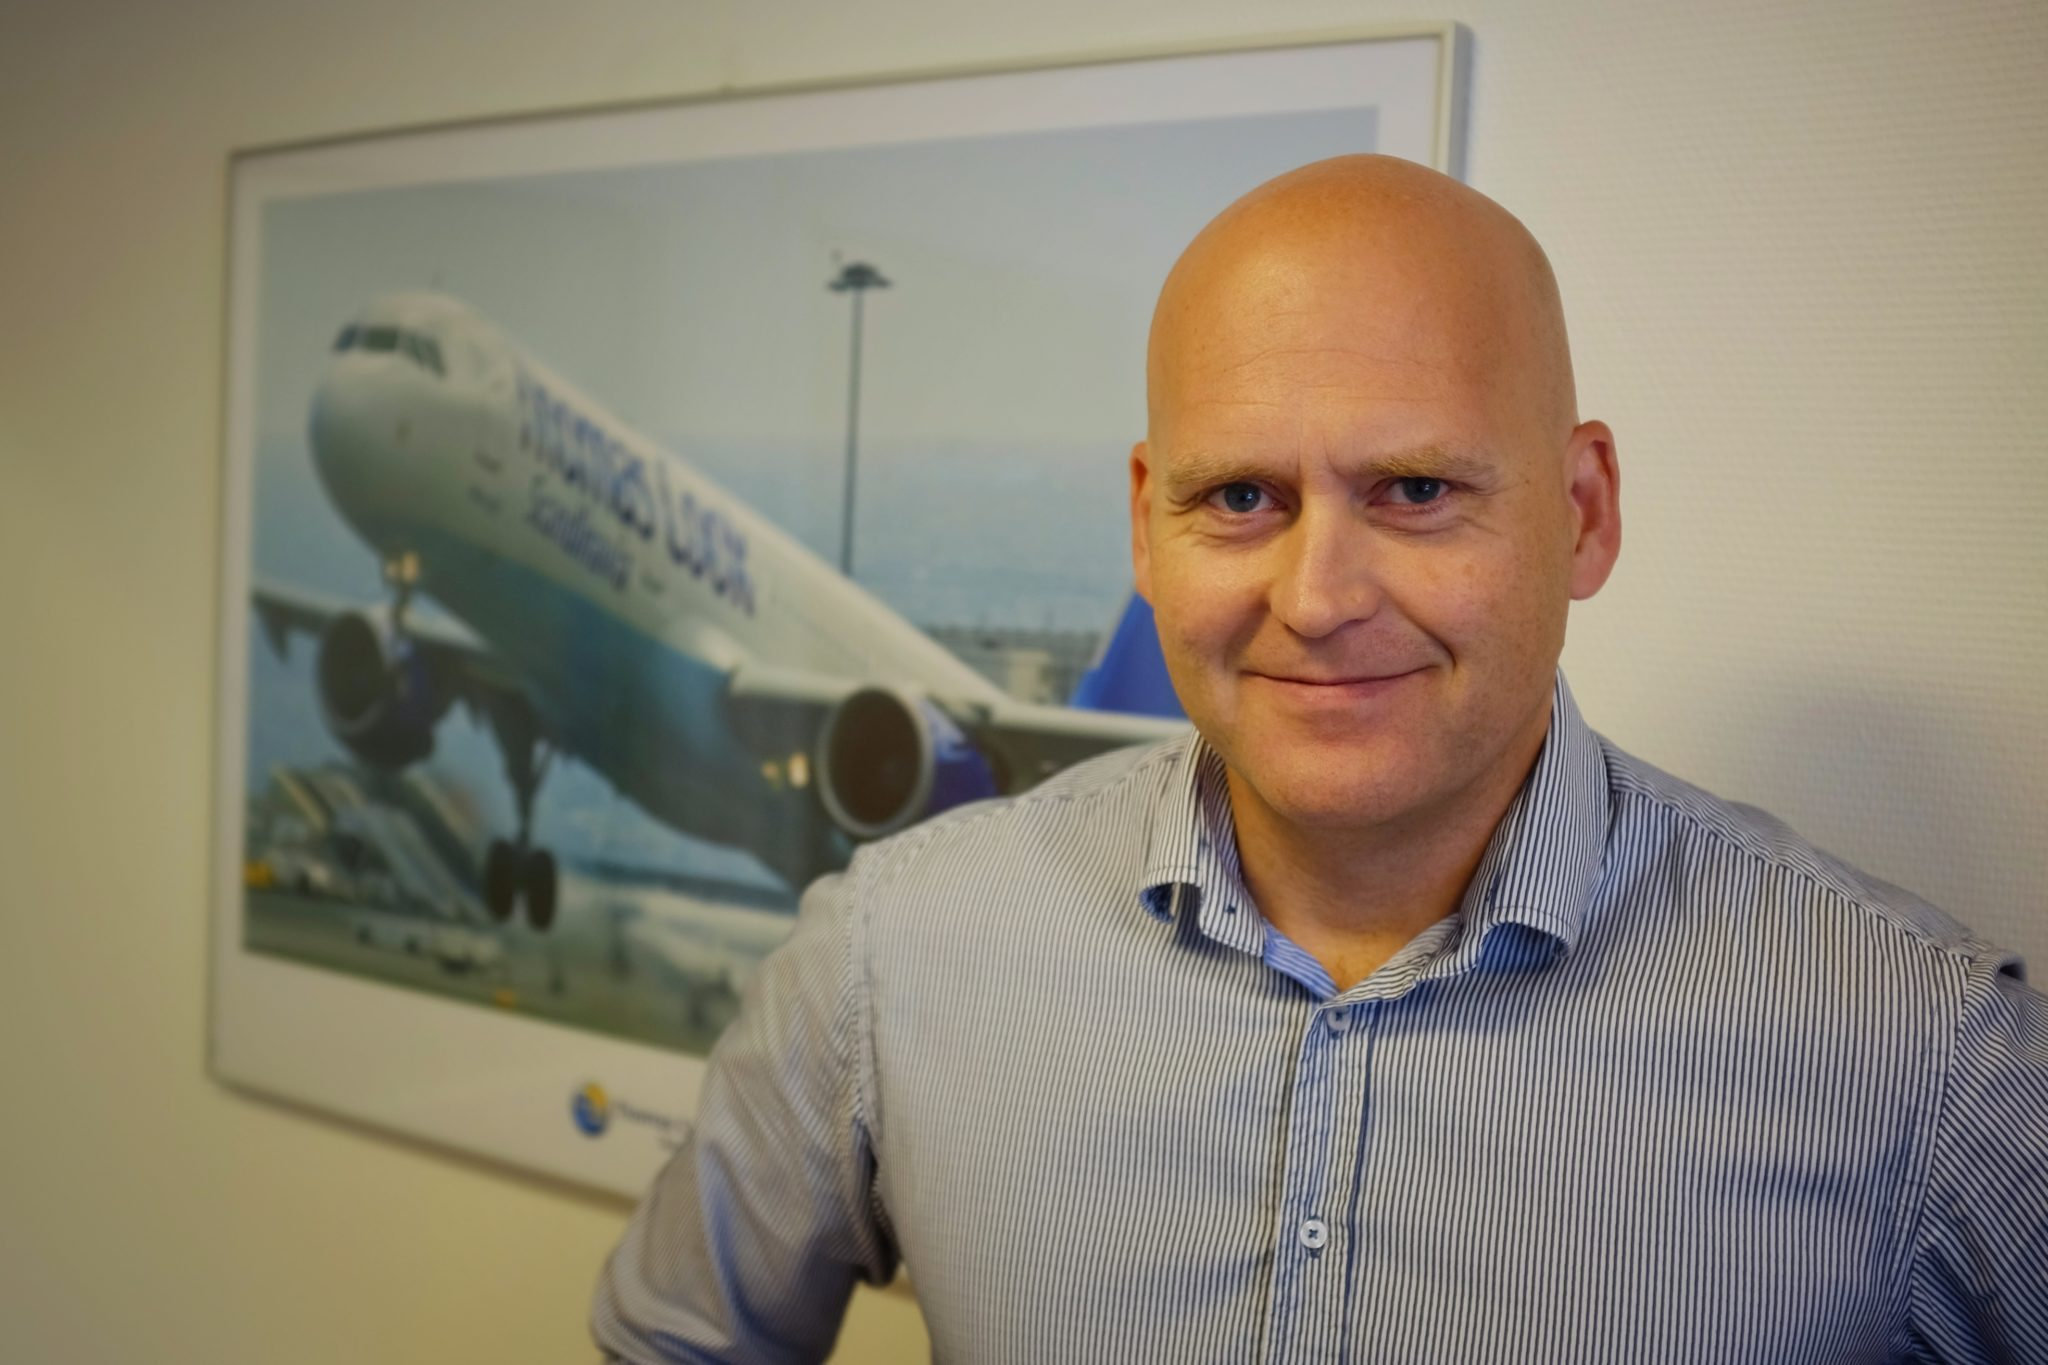 Henning Romme-Mølby fra Thomas Cook Airlines Scandinavia. (Foto: Standby.dk)